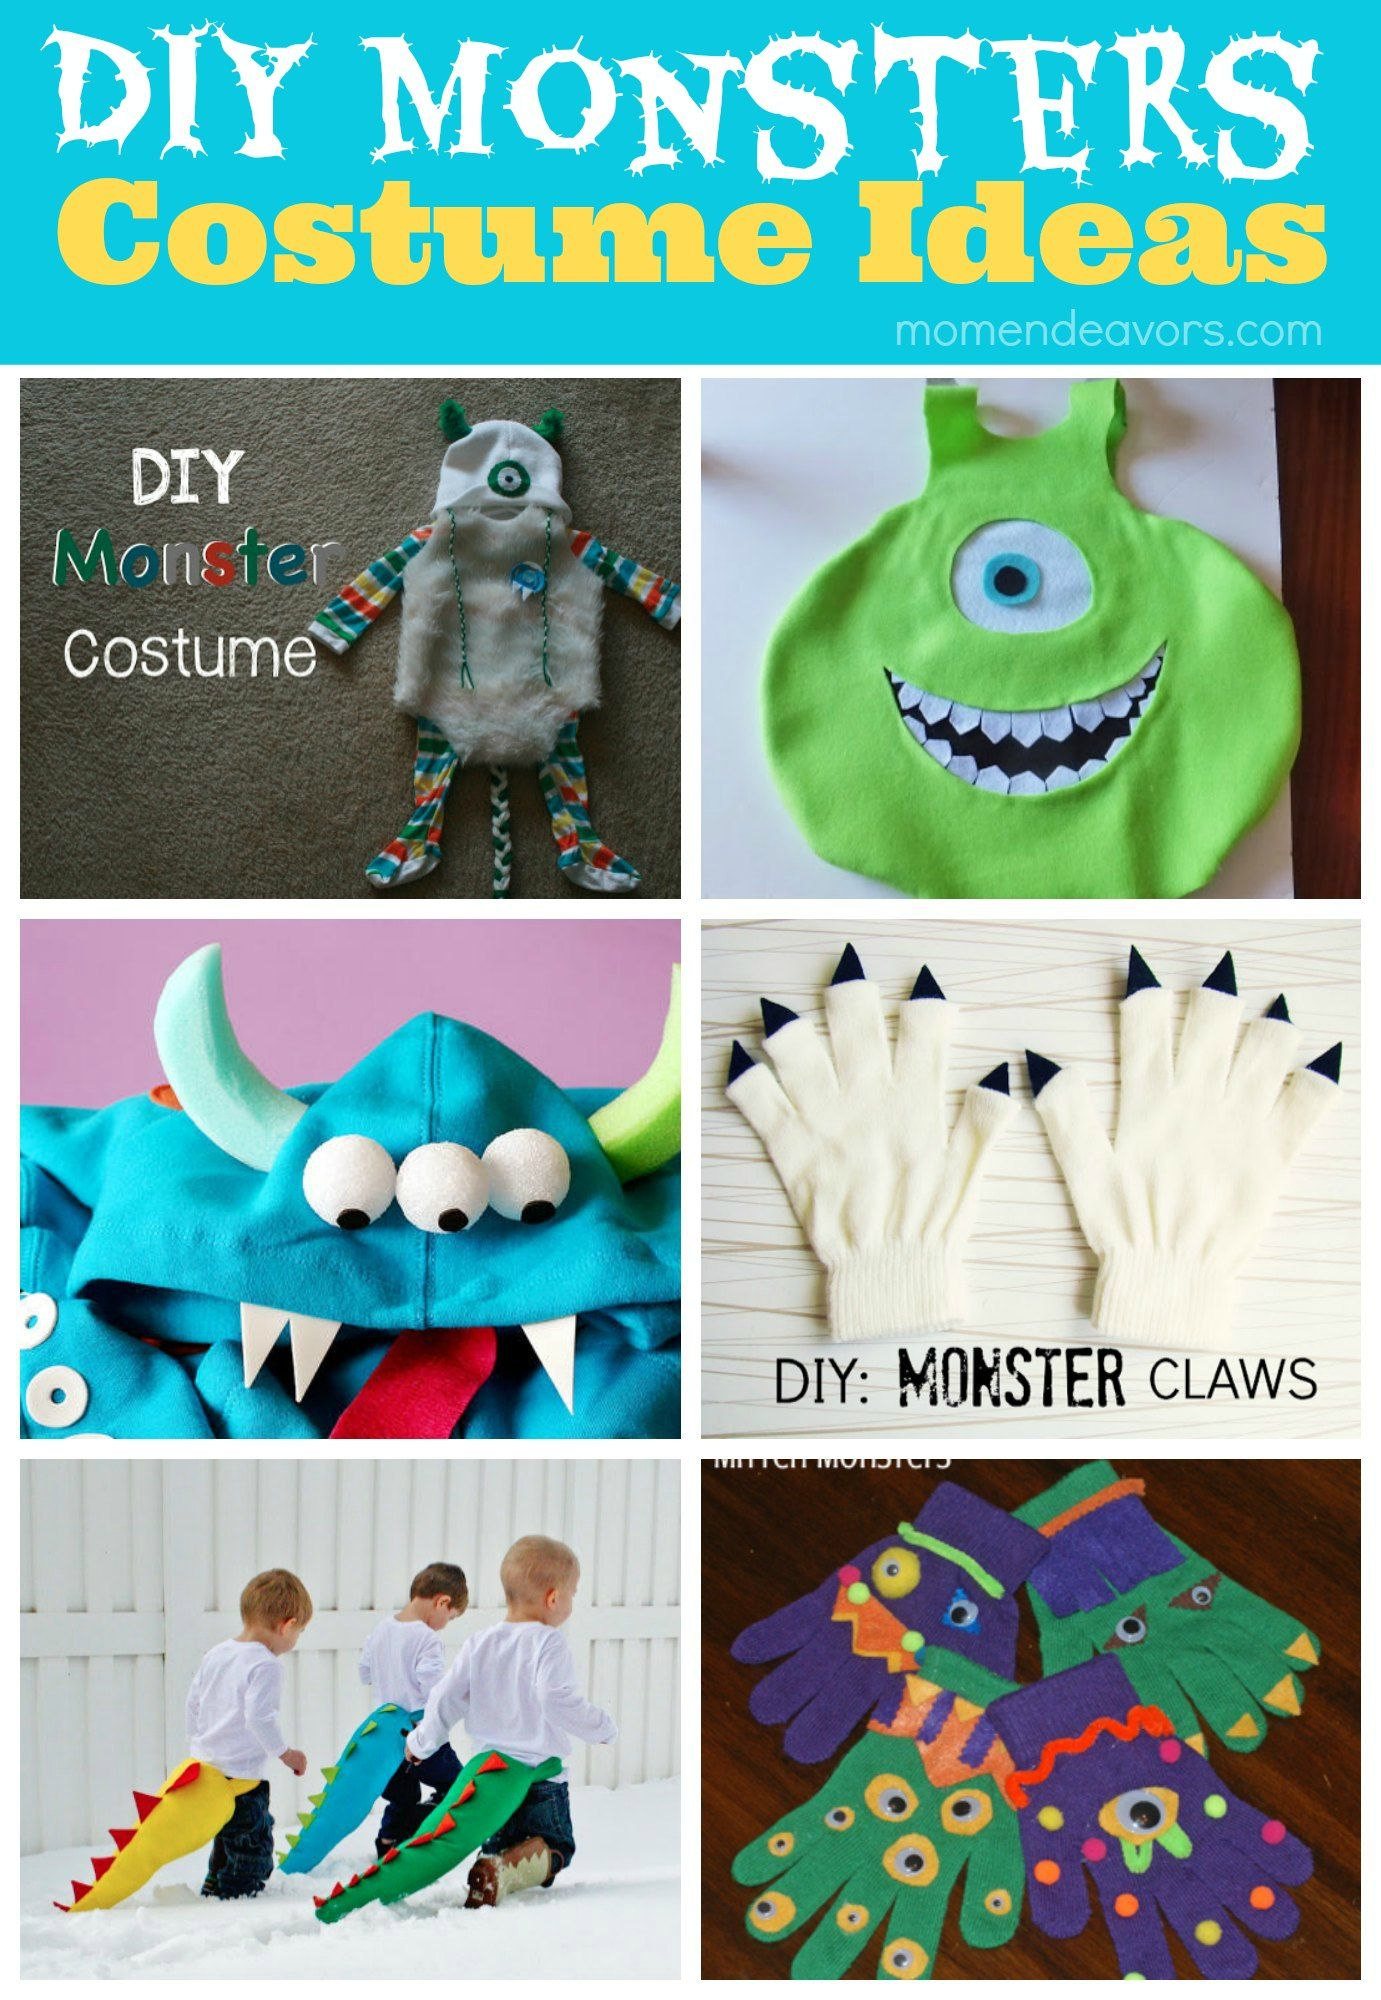 Halloween 2020 Dvd Pre Order DIY Monsters Costume Ideas   great inspiration for a Monsters